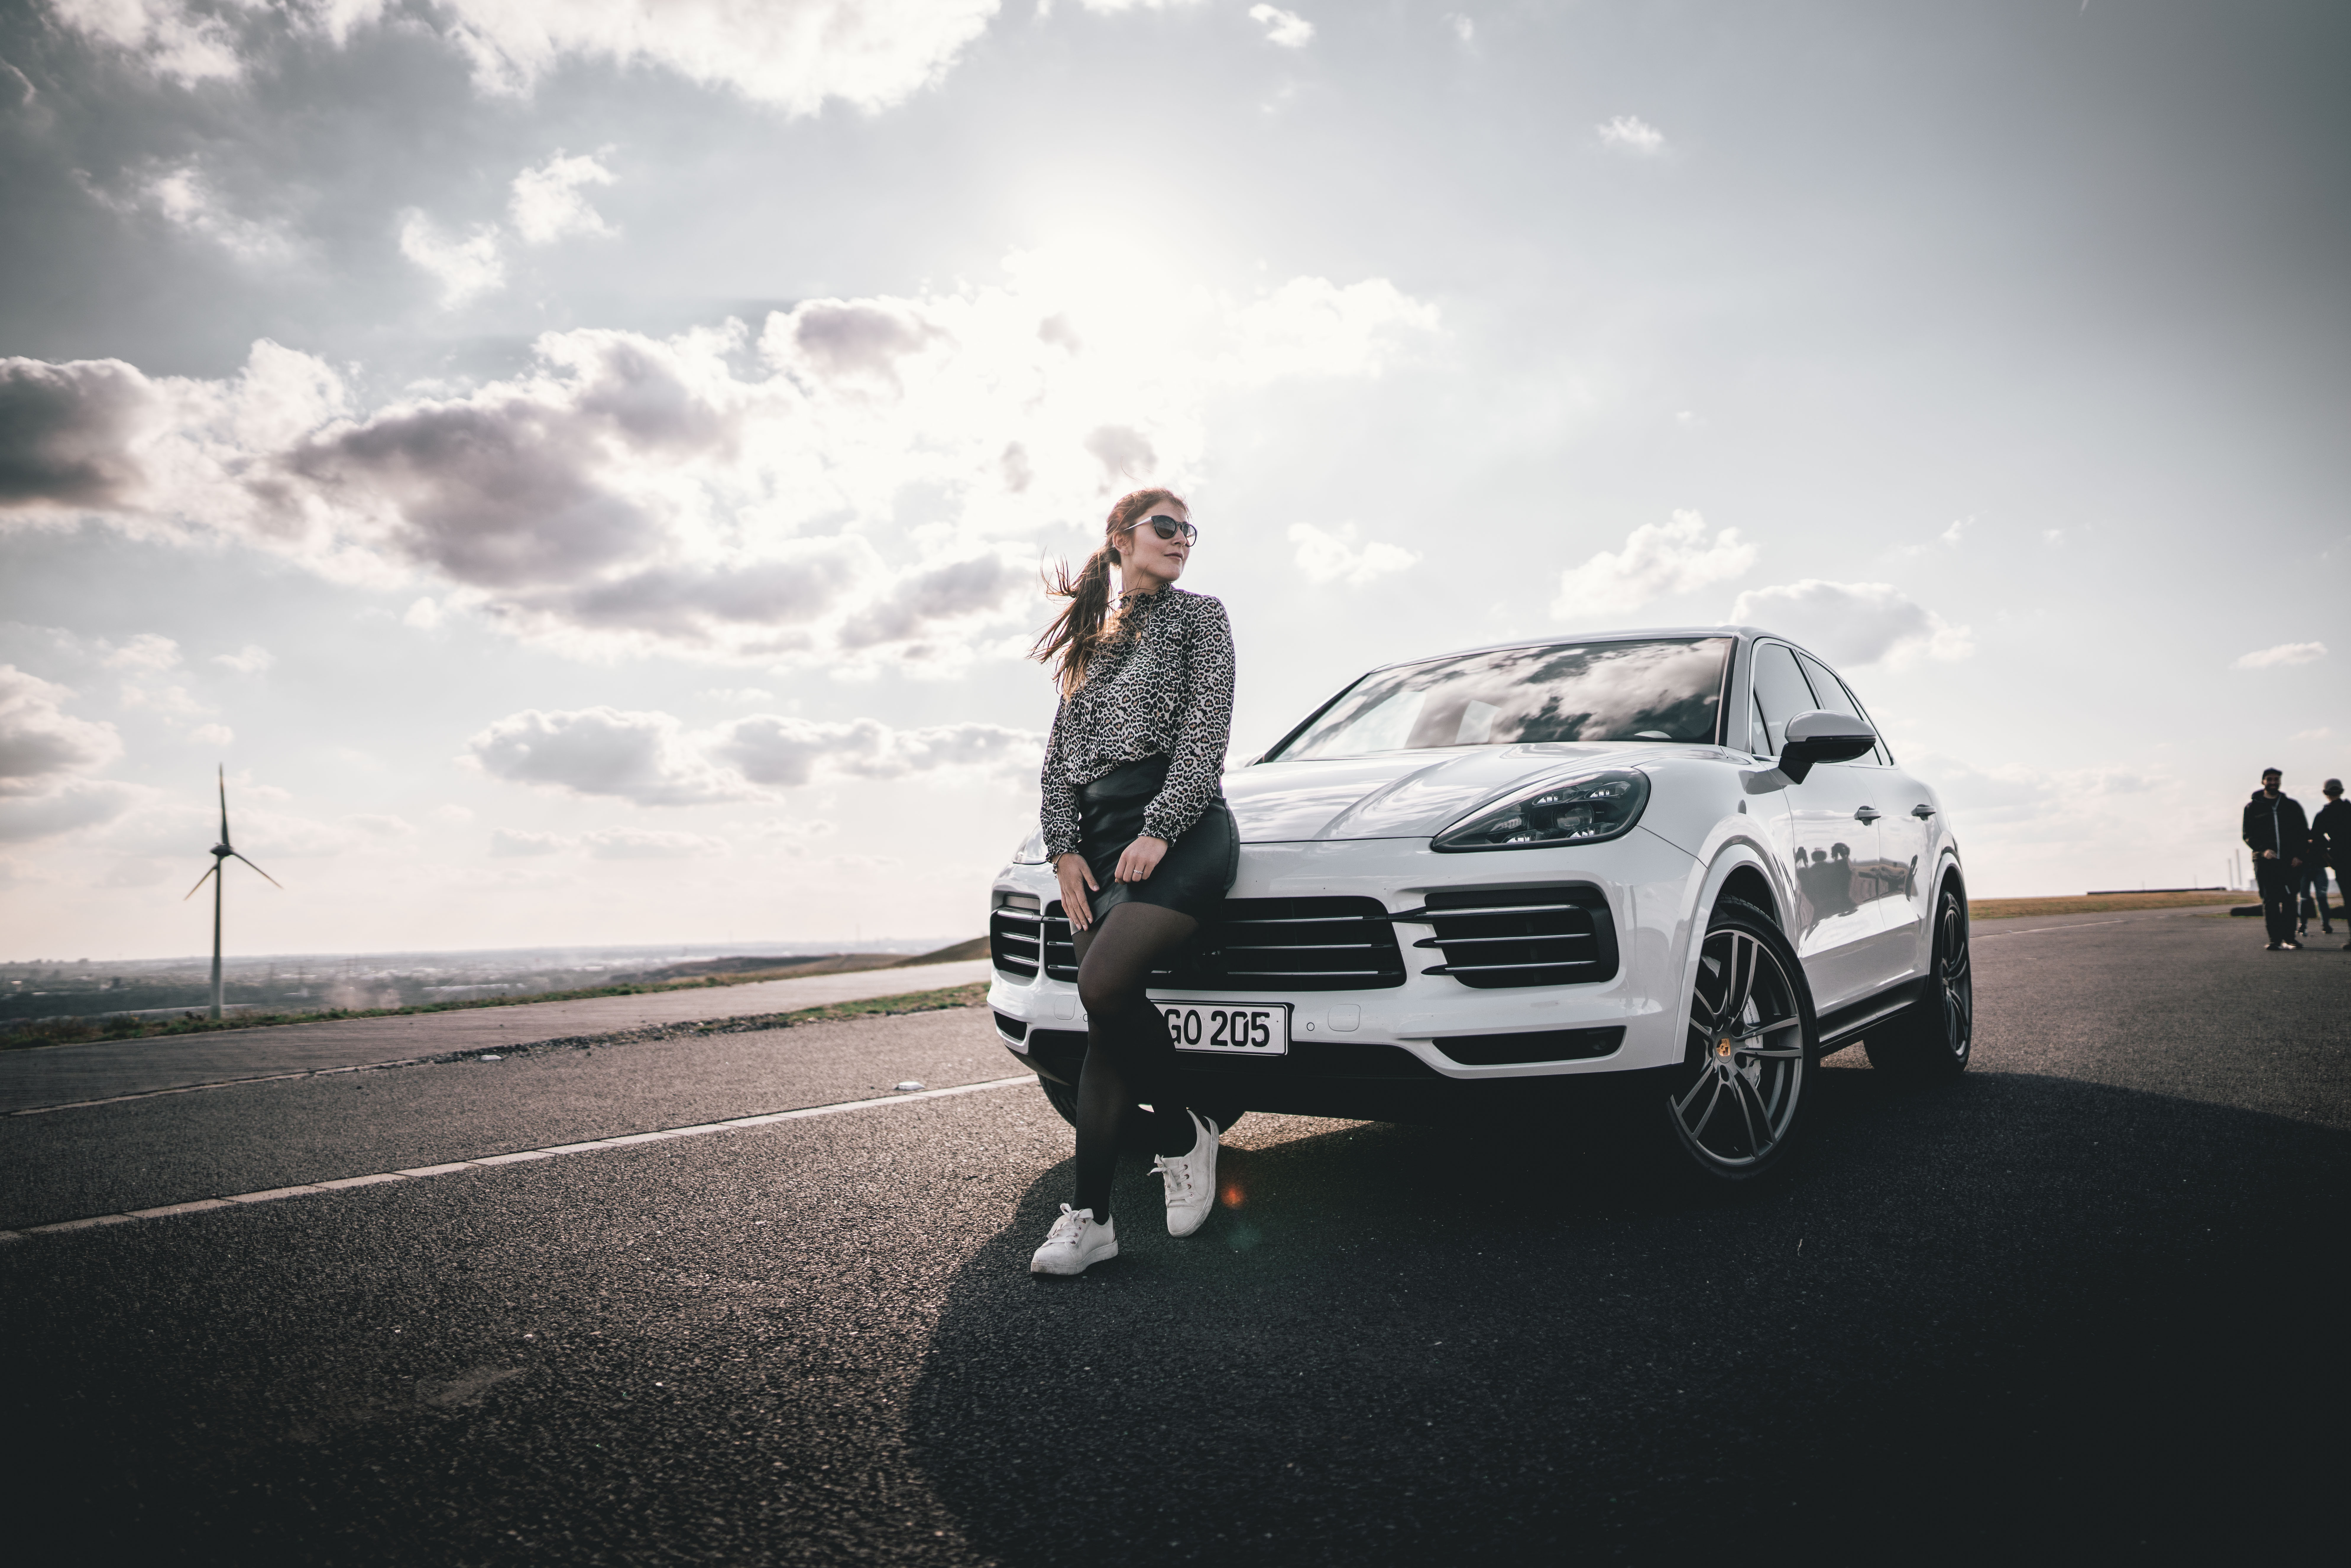 Driving the Porsche Cayenne S: On a road trip with Porsche from